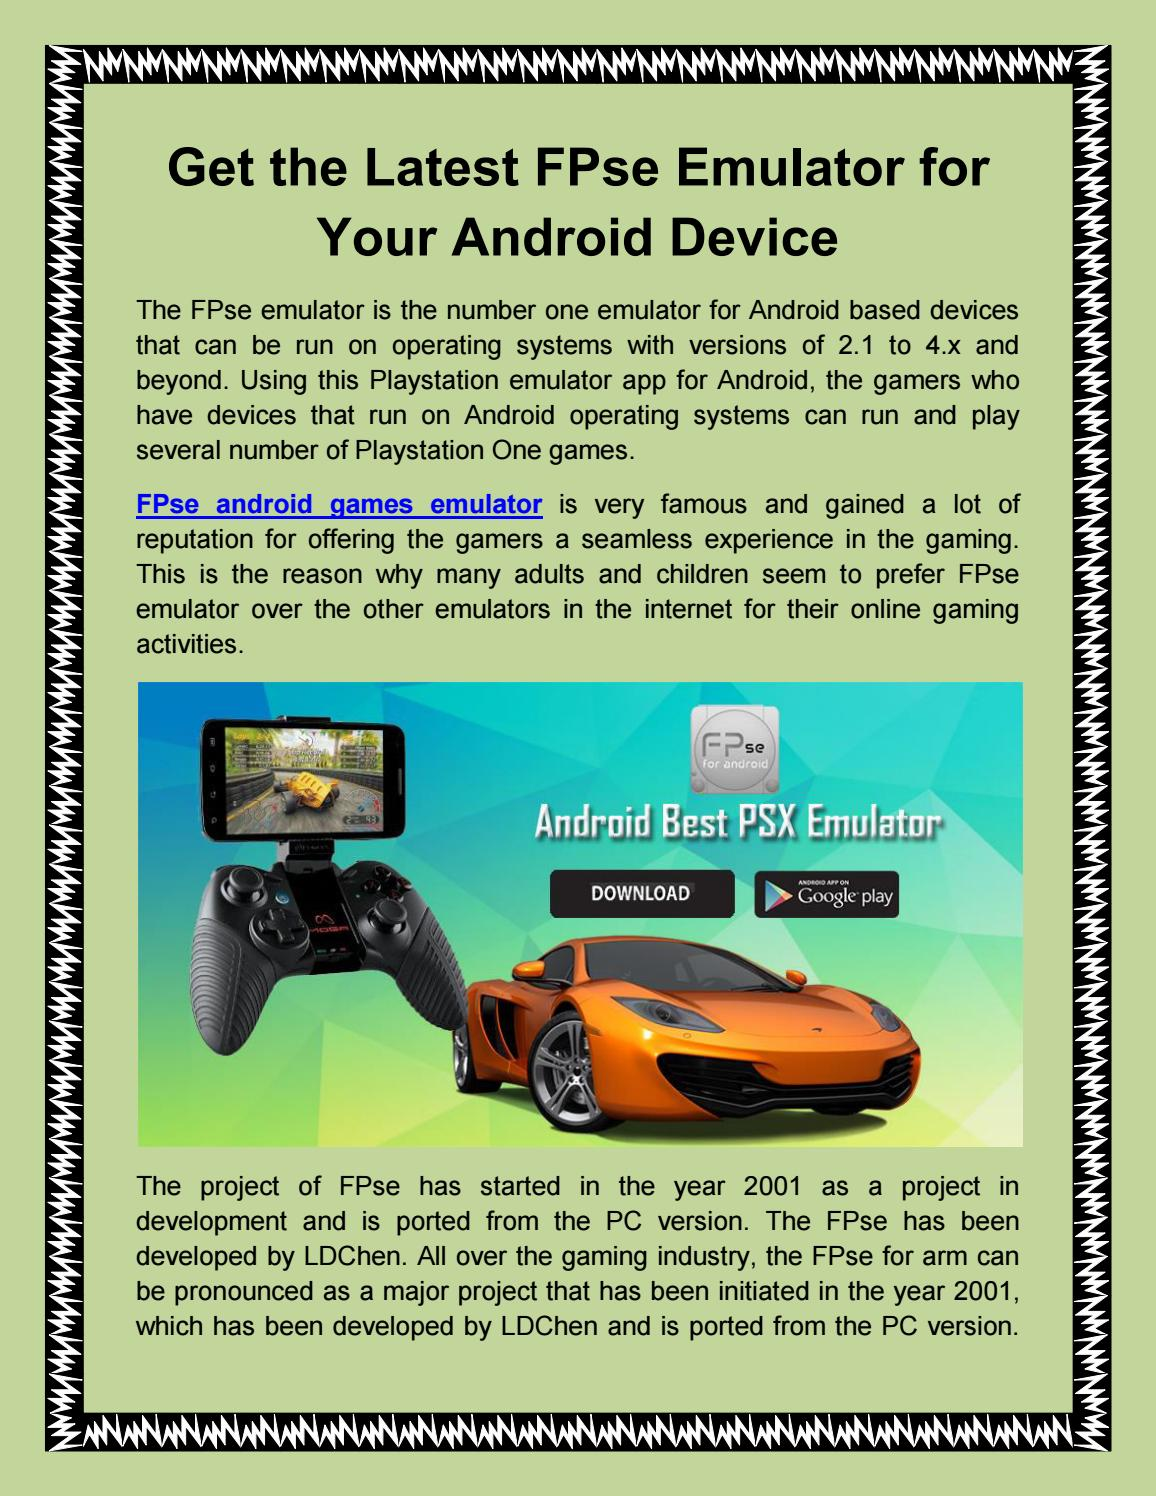 Get the latest fpse emulator for your android devices by FPSe - issuu